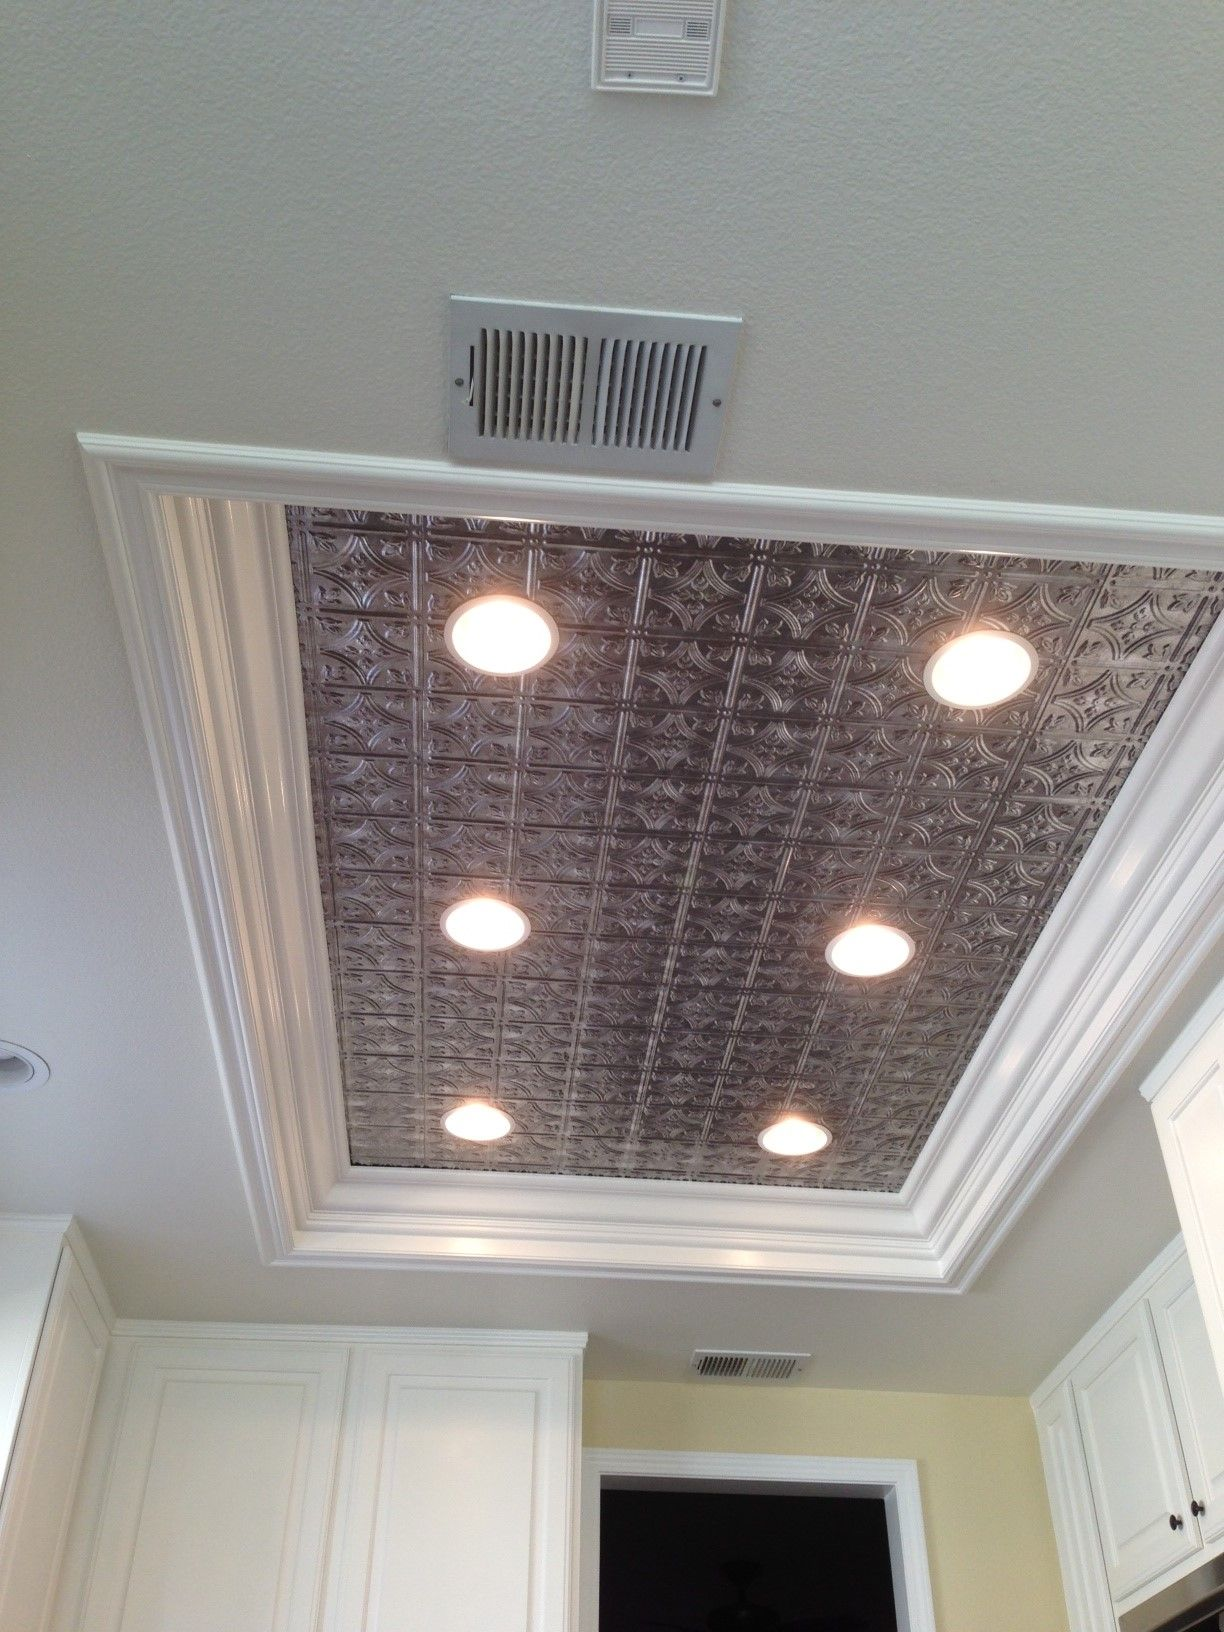 Recessed Lighting For Kitchen Remodel Flourescent Light Box In Kitchen We Also Replaced The